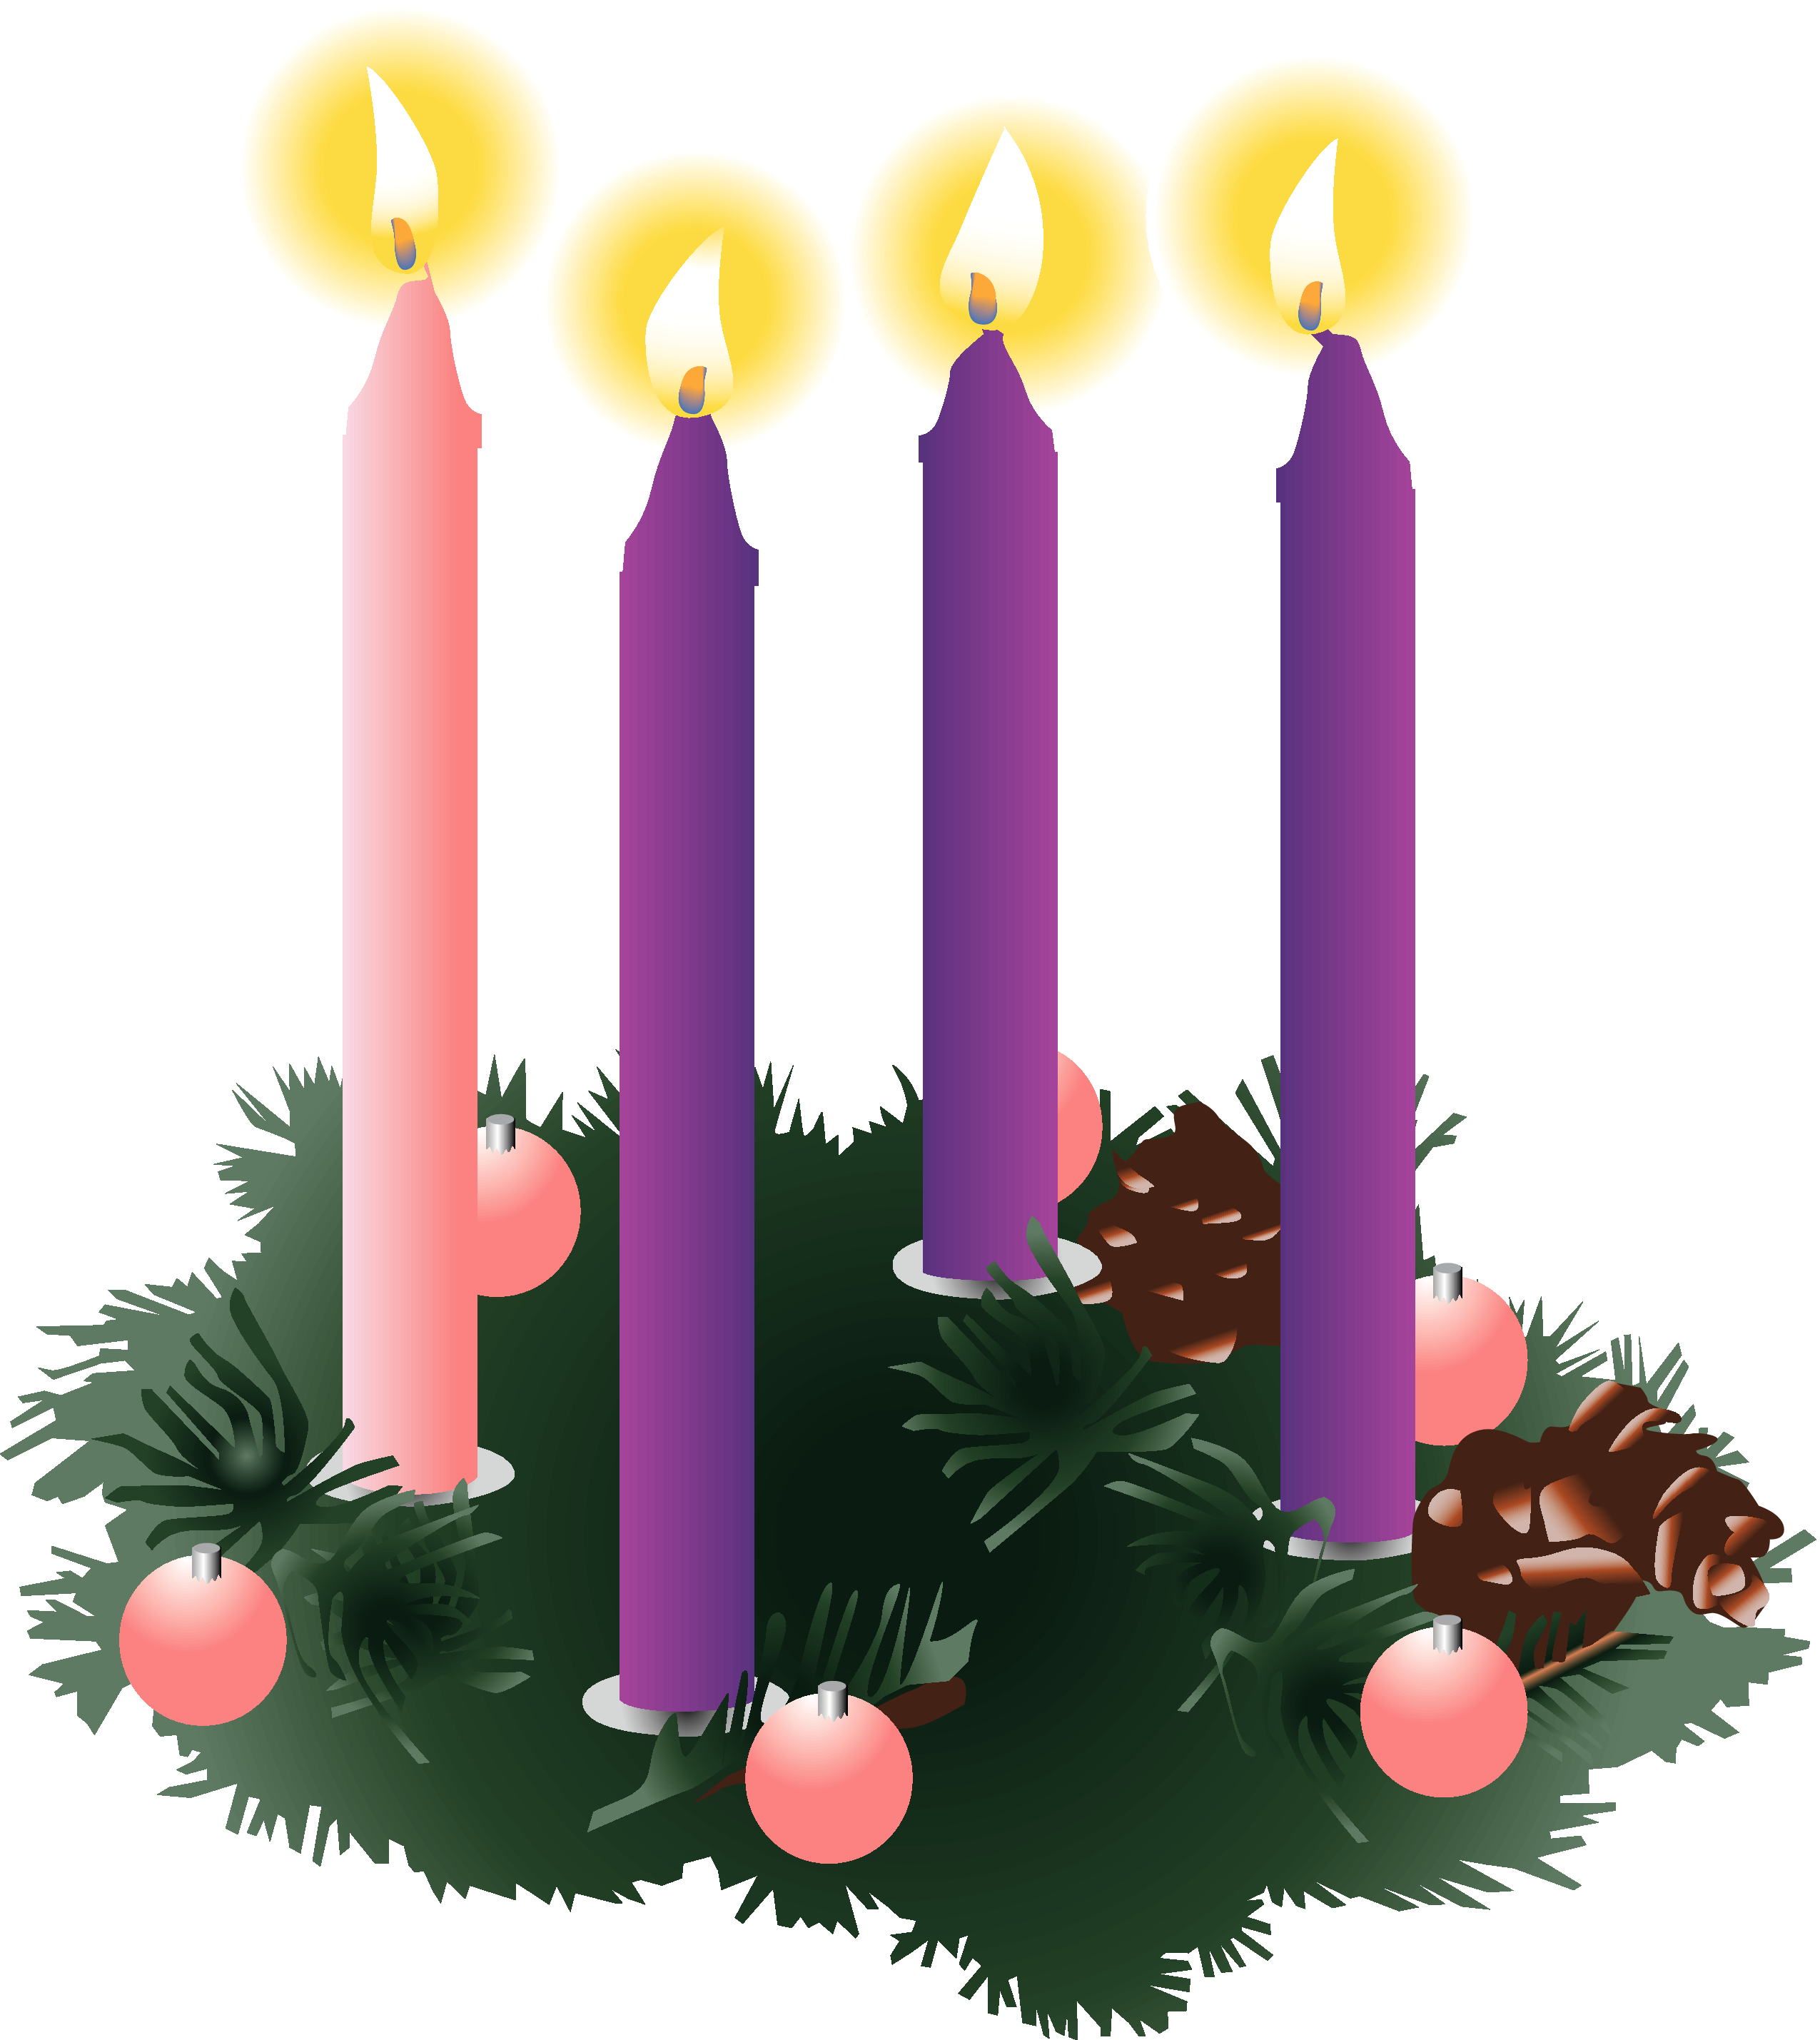 Fourth Week Of Advent Clipart.